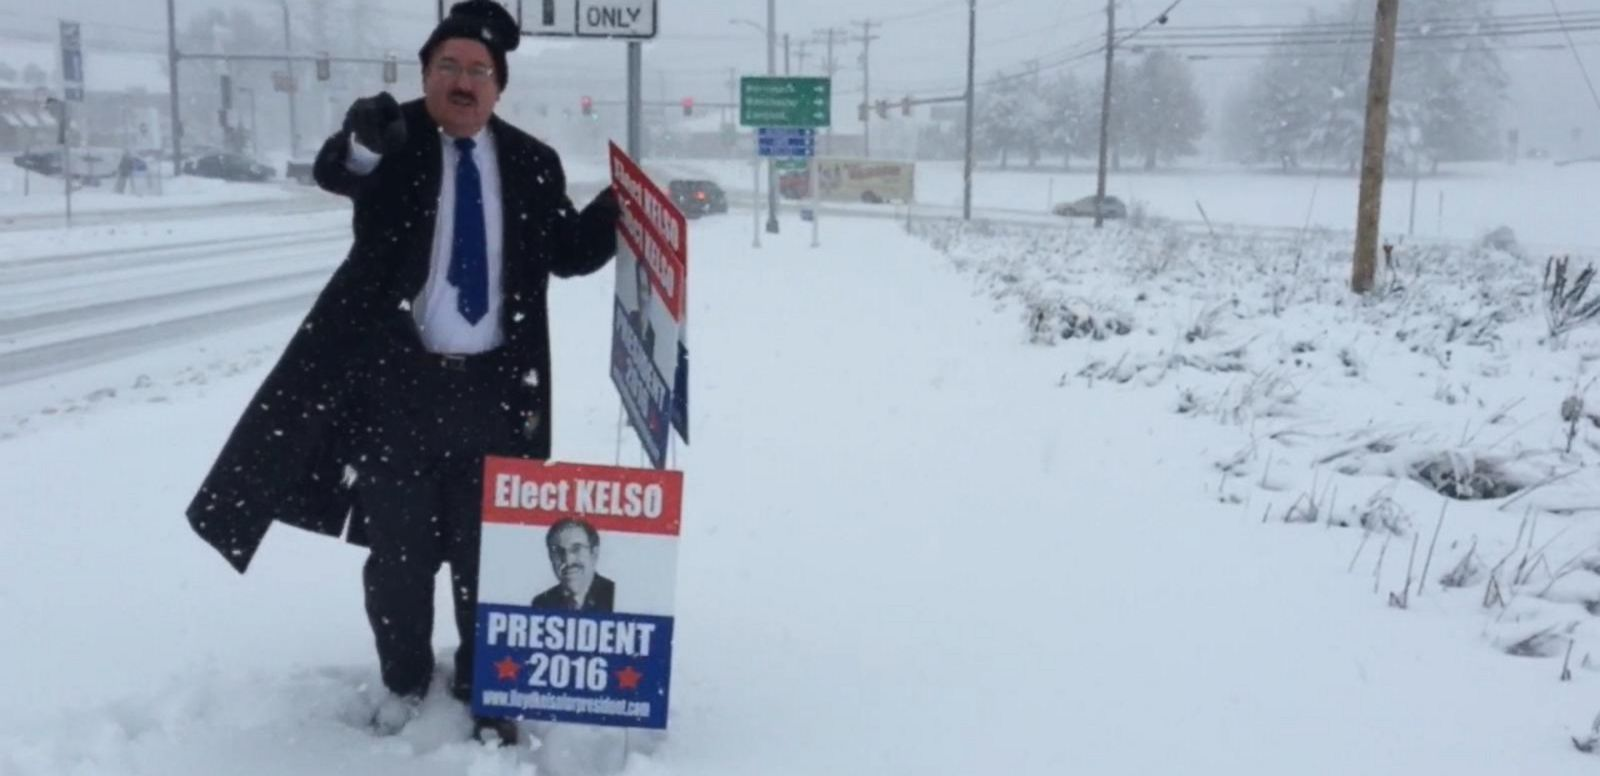 VIDEO: Lesser-Known Candidate, Lloyd Kelso Posts Yard Signs